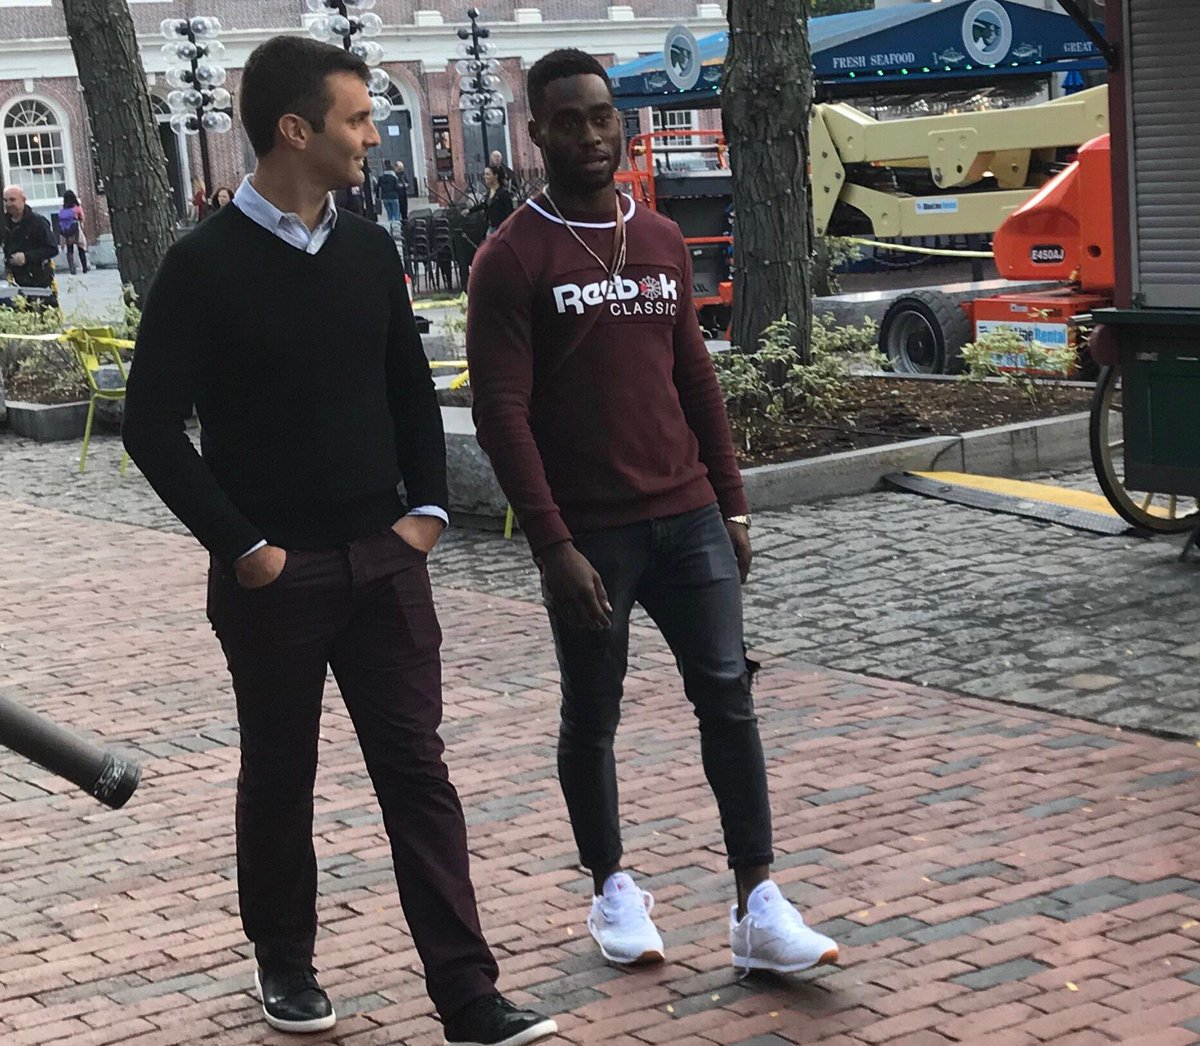 Looking forward to sharing the story of Patriots WR Brandin Cooks, who stayed focused through a tough childhood before finding NFL success.  It airs today on ESPN's Sunday NFL Countdown at 10:35 am EST. Produced by @Gavin_Cote.